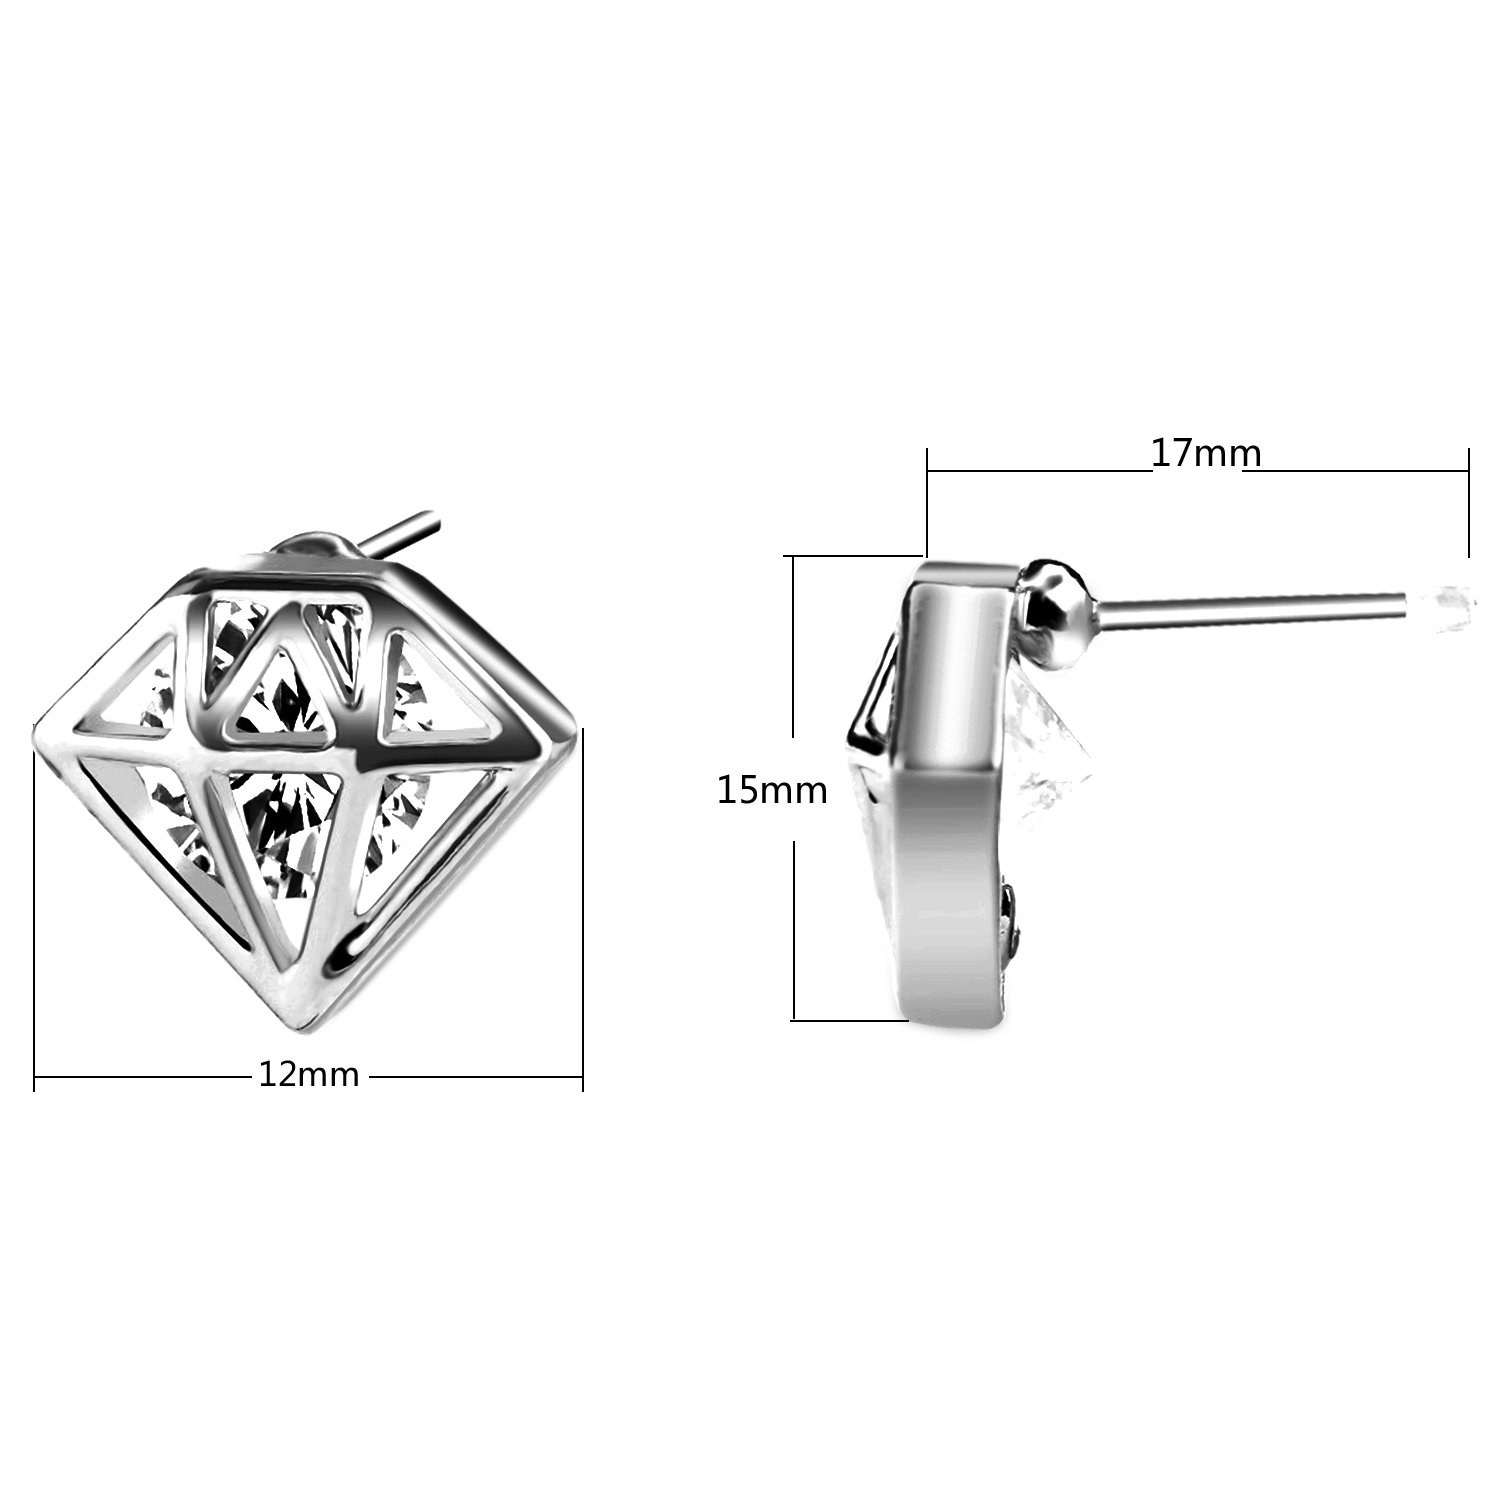 UHIBROS Diamond Shaped Earrings, Unisex Hypoallergenic Stainless Steel Earrings,Cubic Zirconia Stud Earrings Silver,1Pair